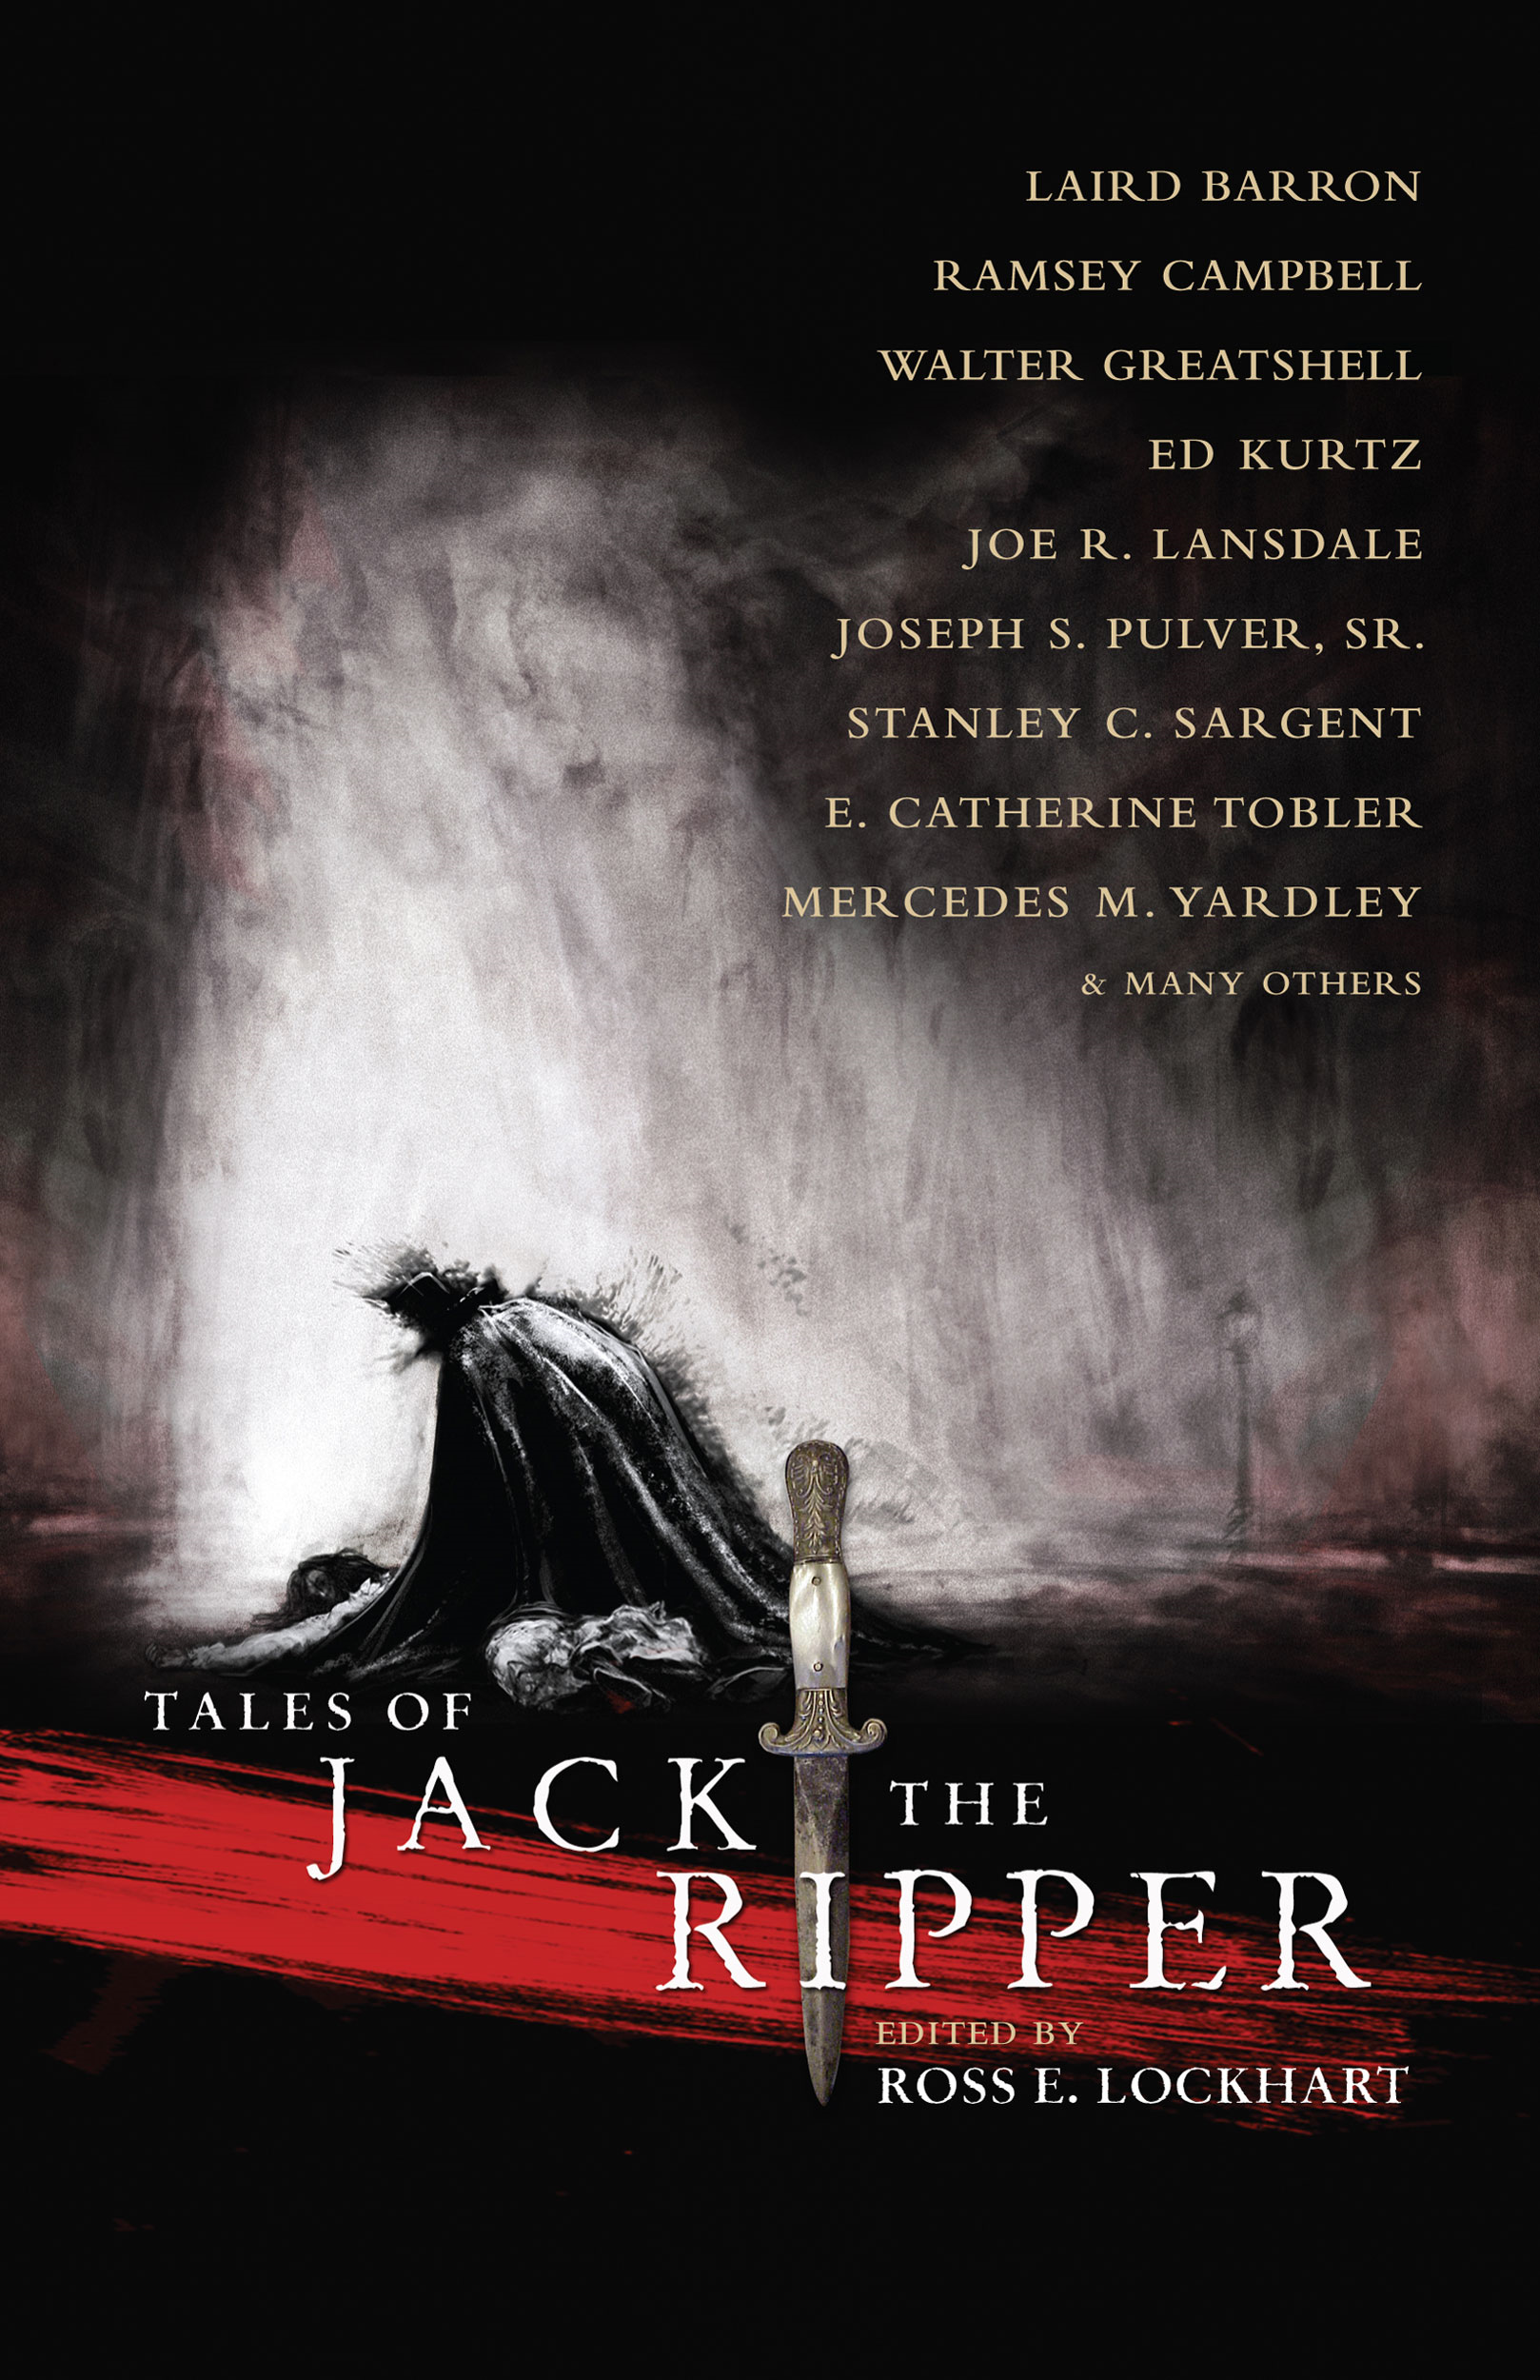 Ross E. Lockhart - Tales of Jack the Ripper